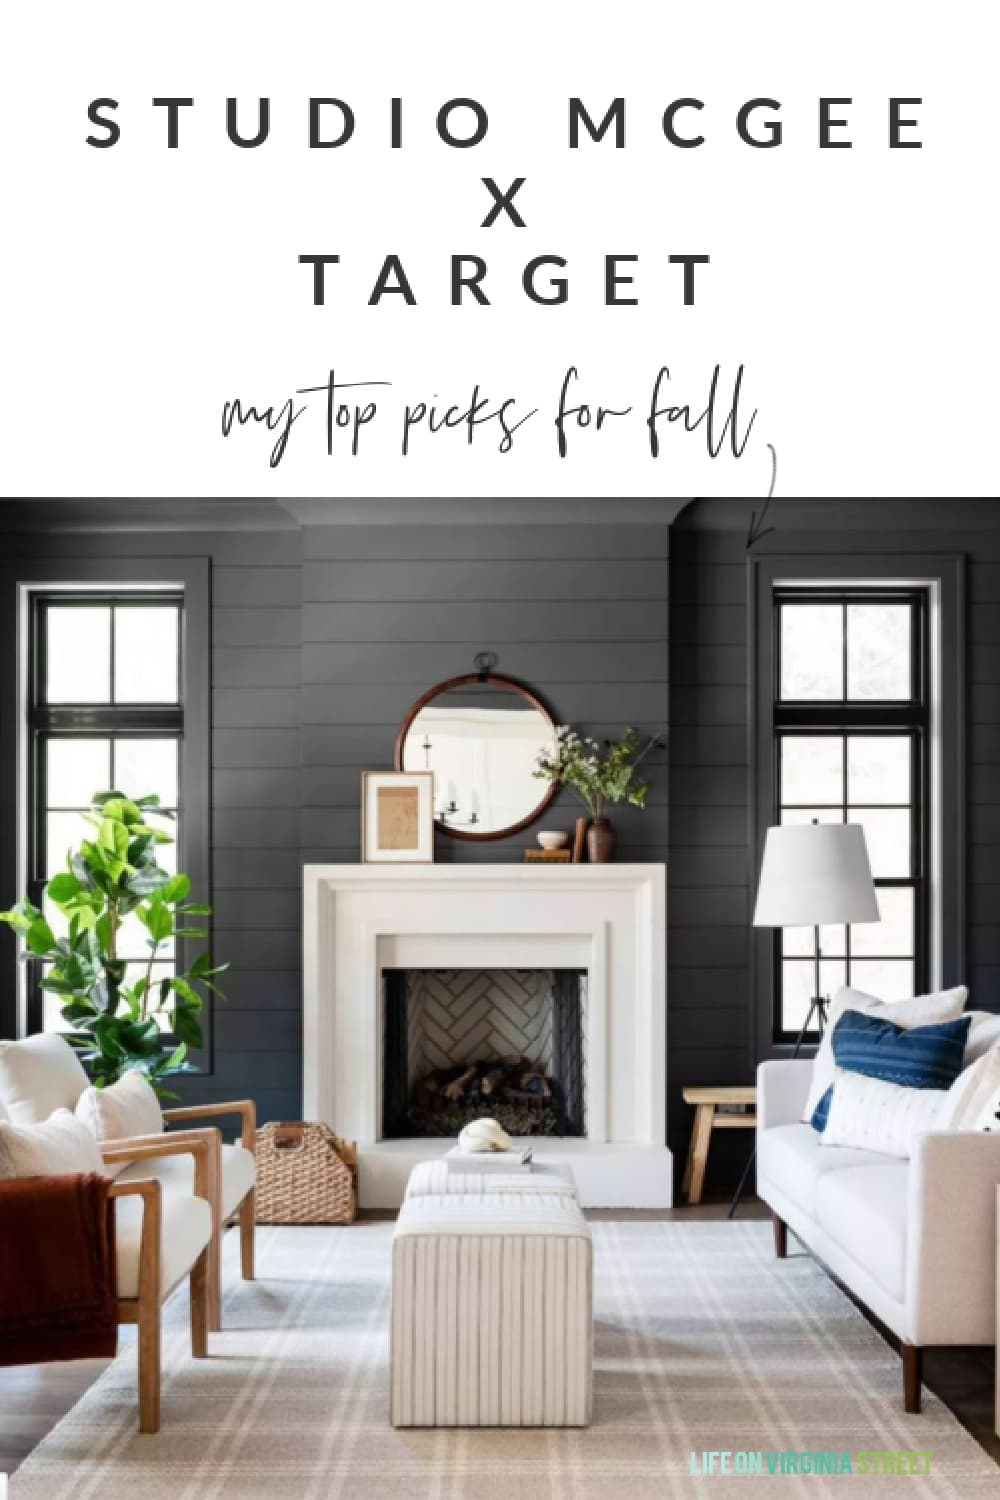 Studio Mcgee Fall Collection At Target Life On Virginia Street